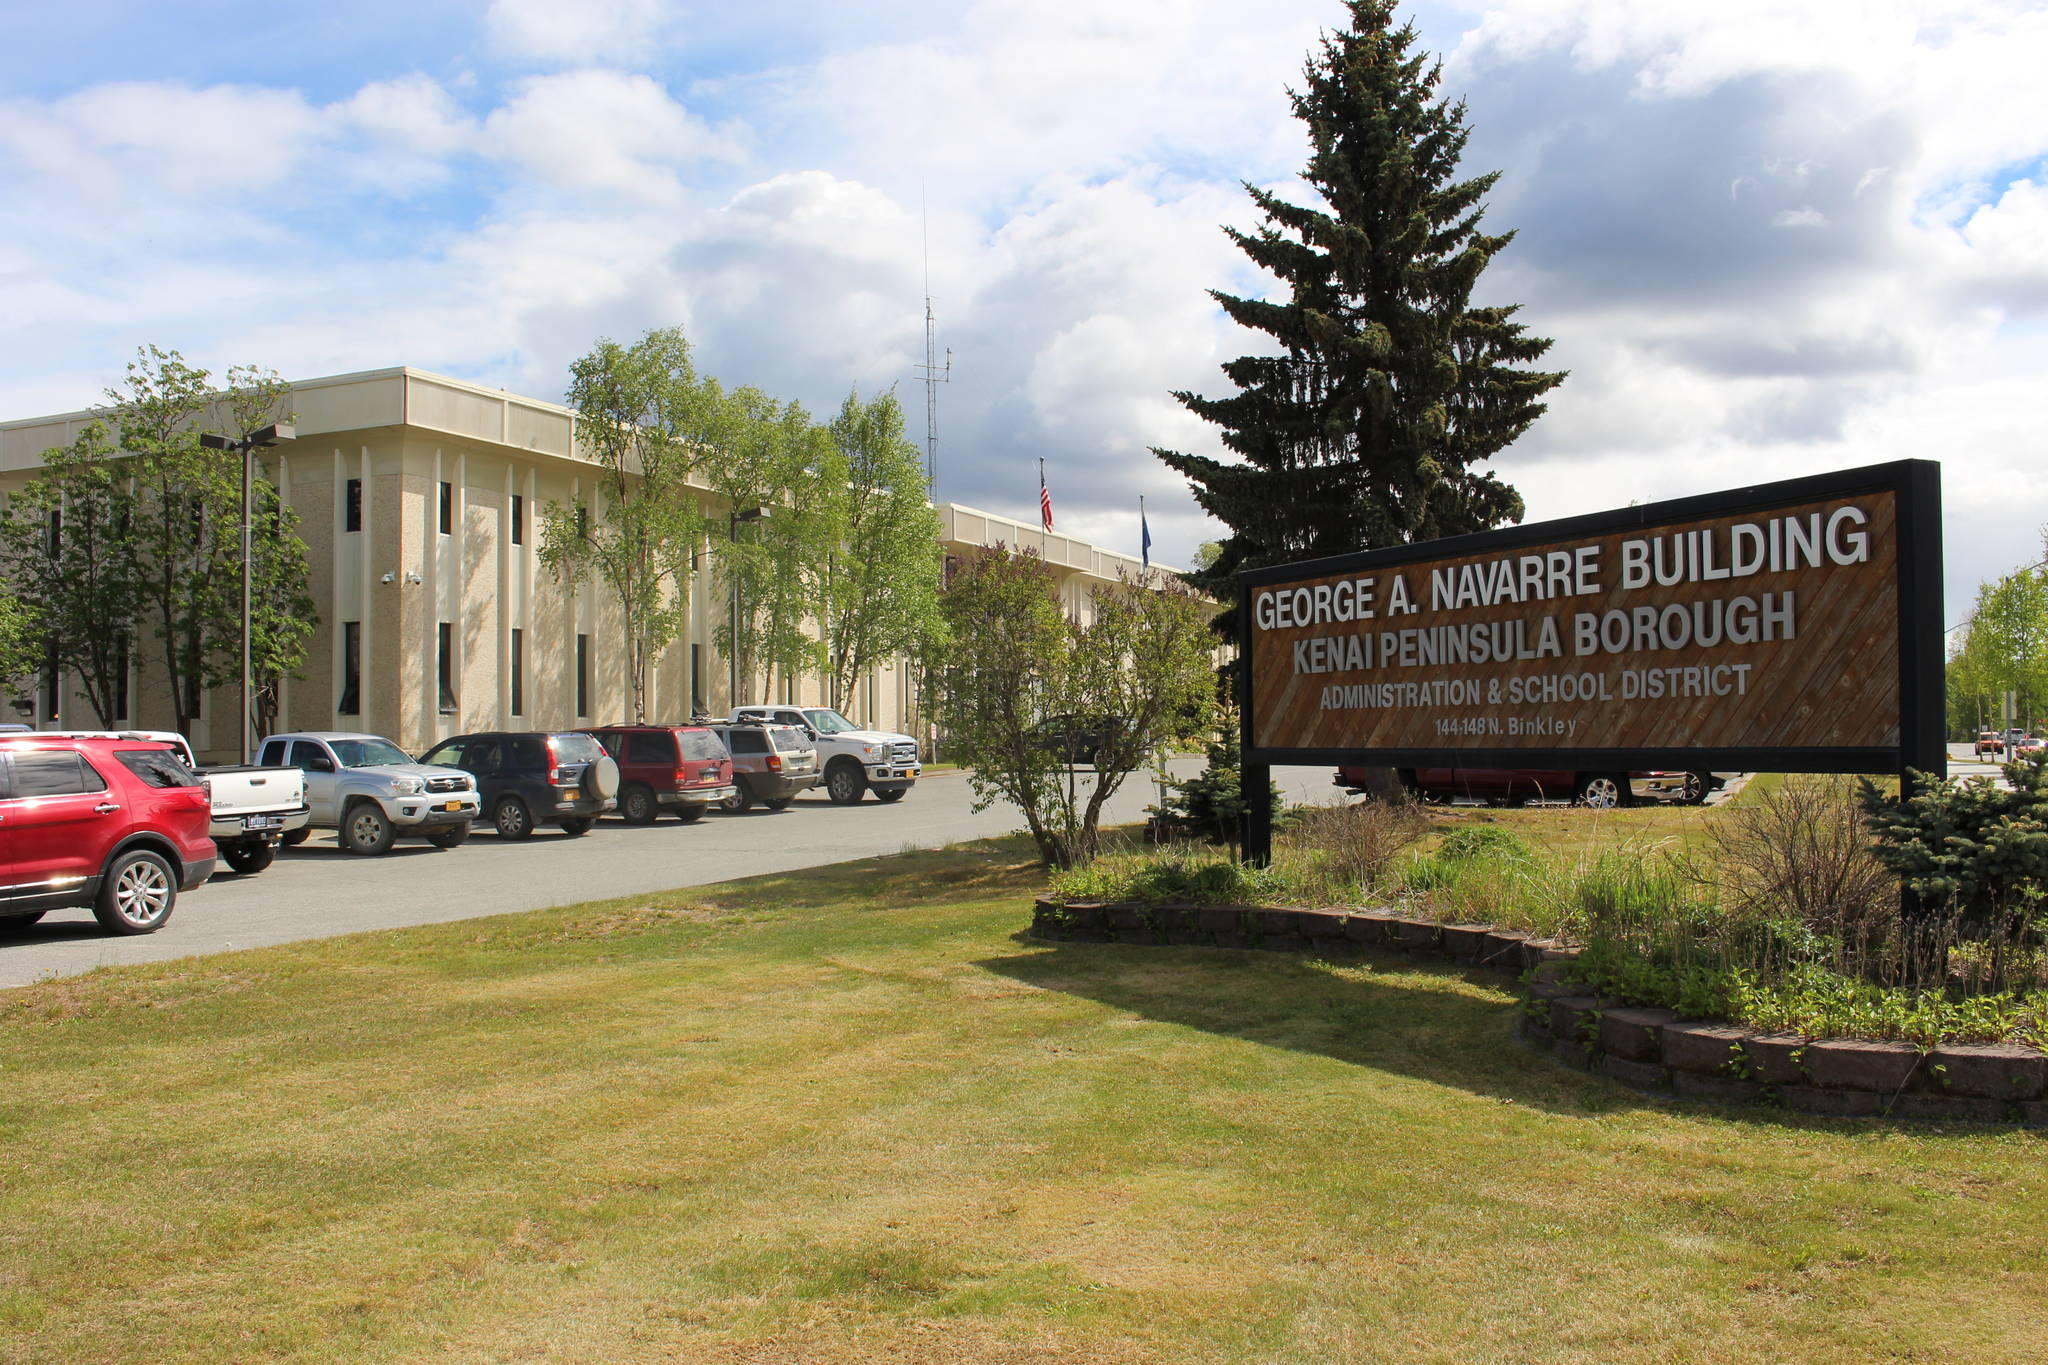 The entrance to the Kenai Peninsula Borough building in Soldotna, Alaska, is seen here on June 1, 2020. (Photo by Brian Mazurek/Peninsula Clarion)